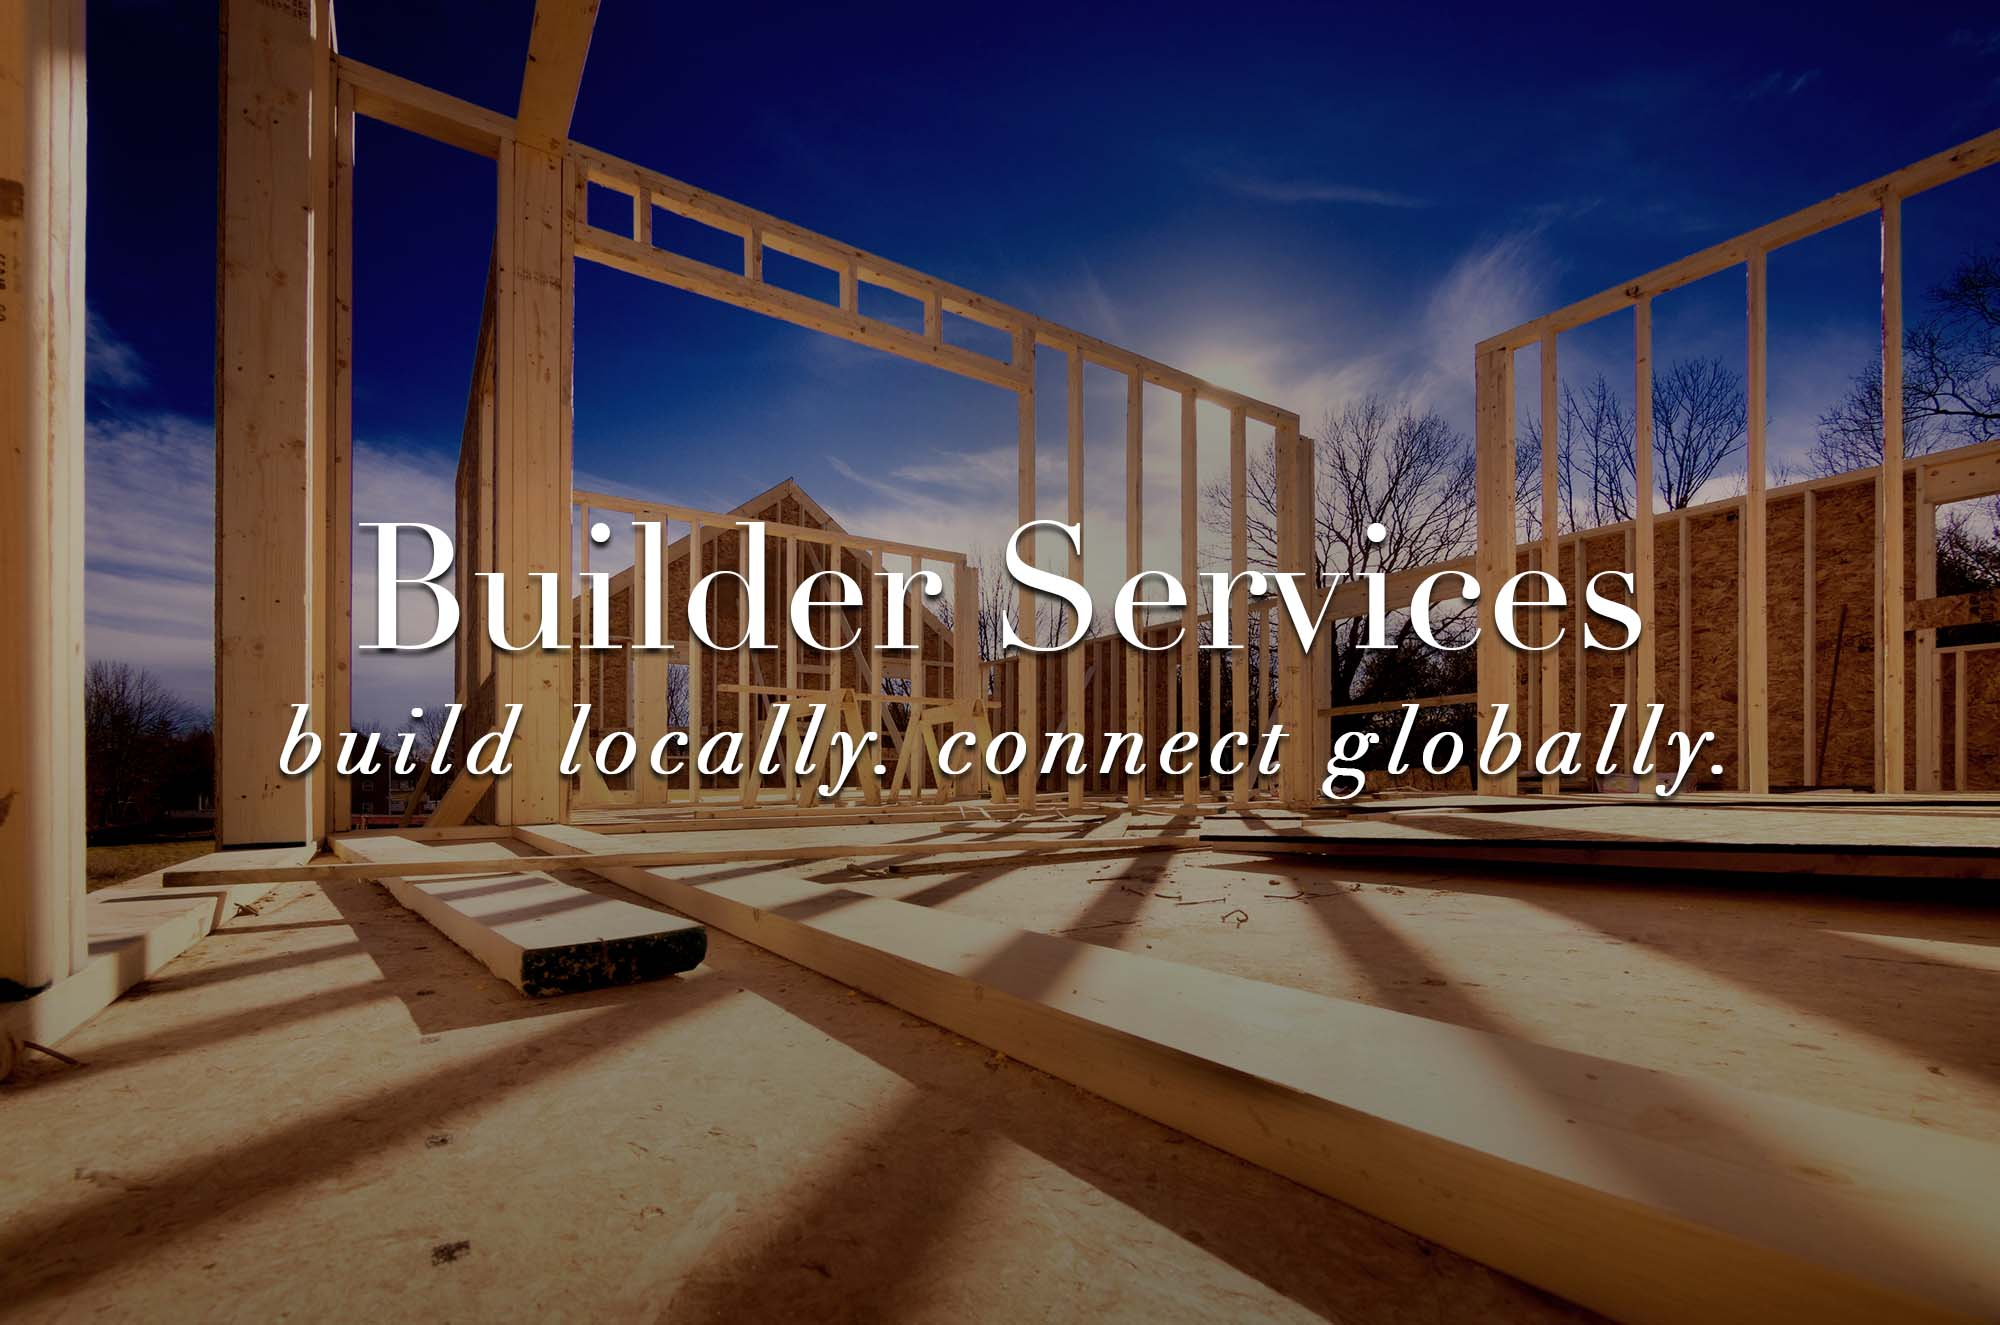 Builder Services Page Image